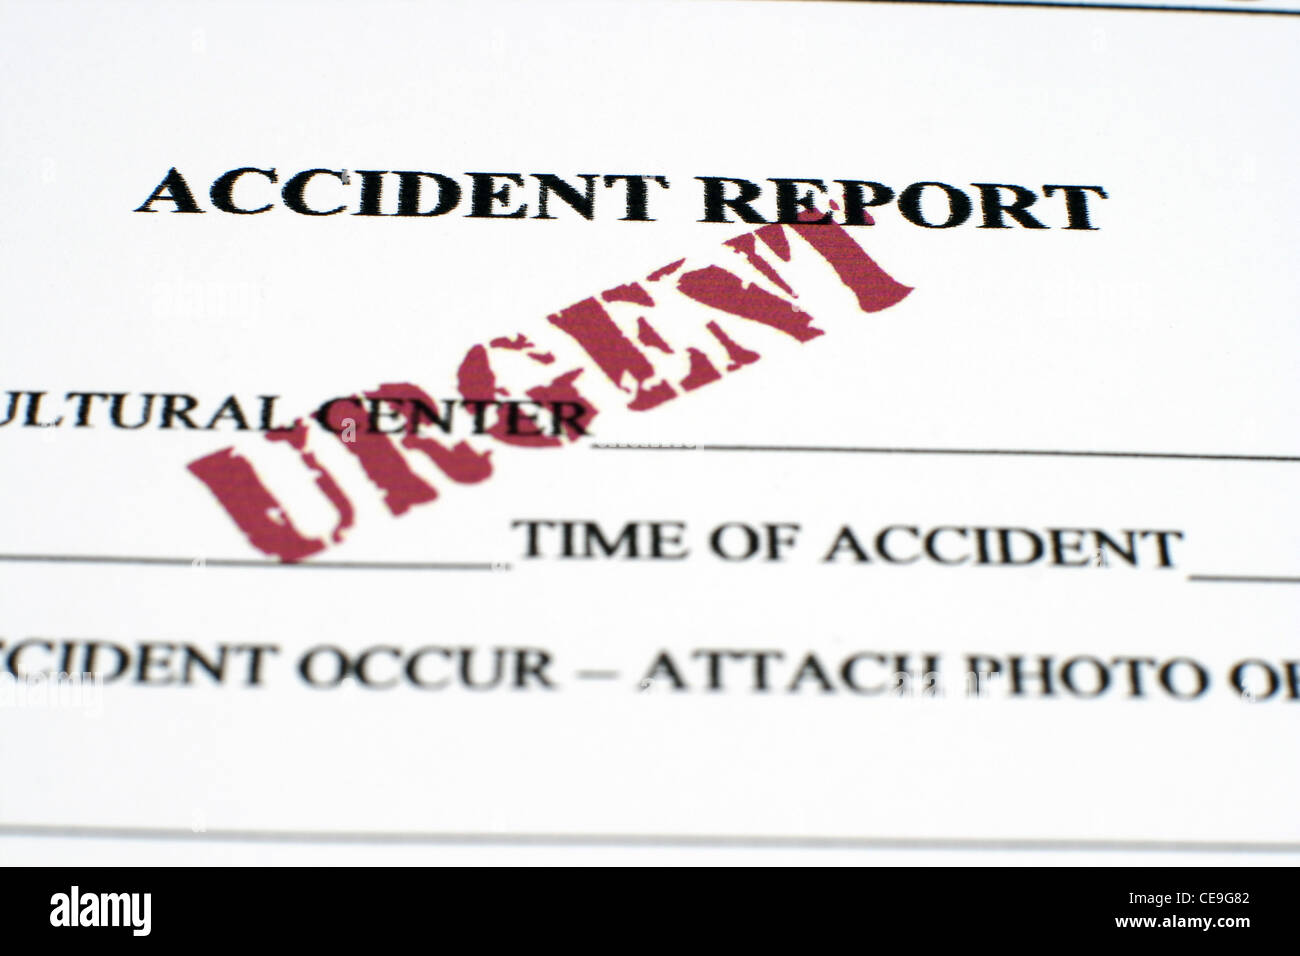 Accident report Close up - Stock Image